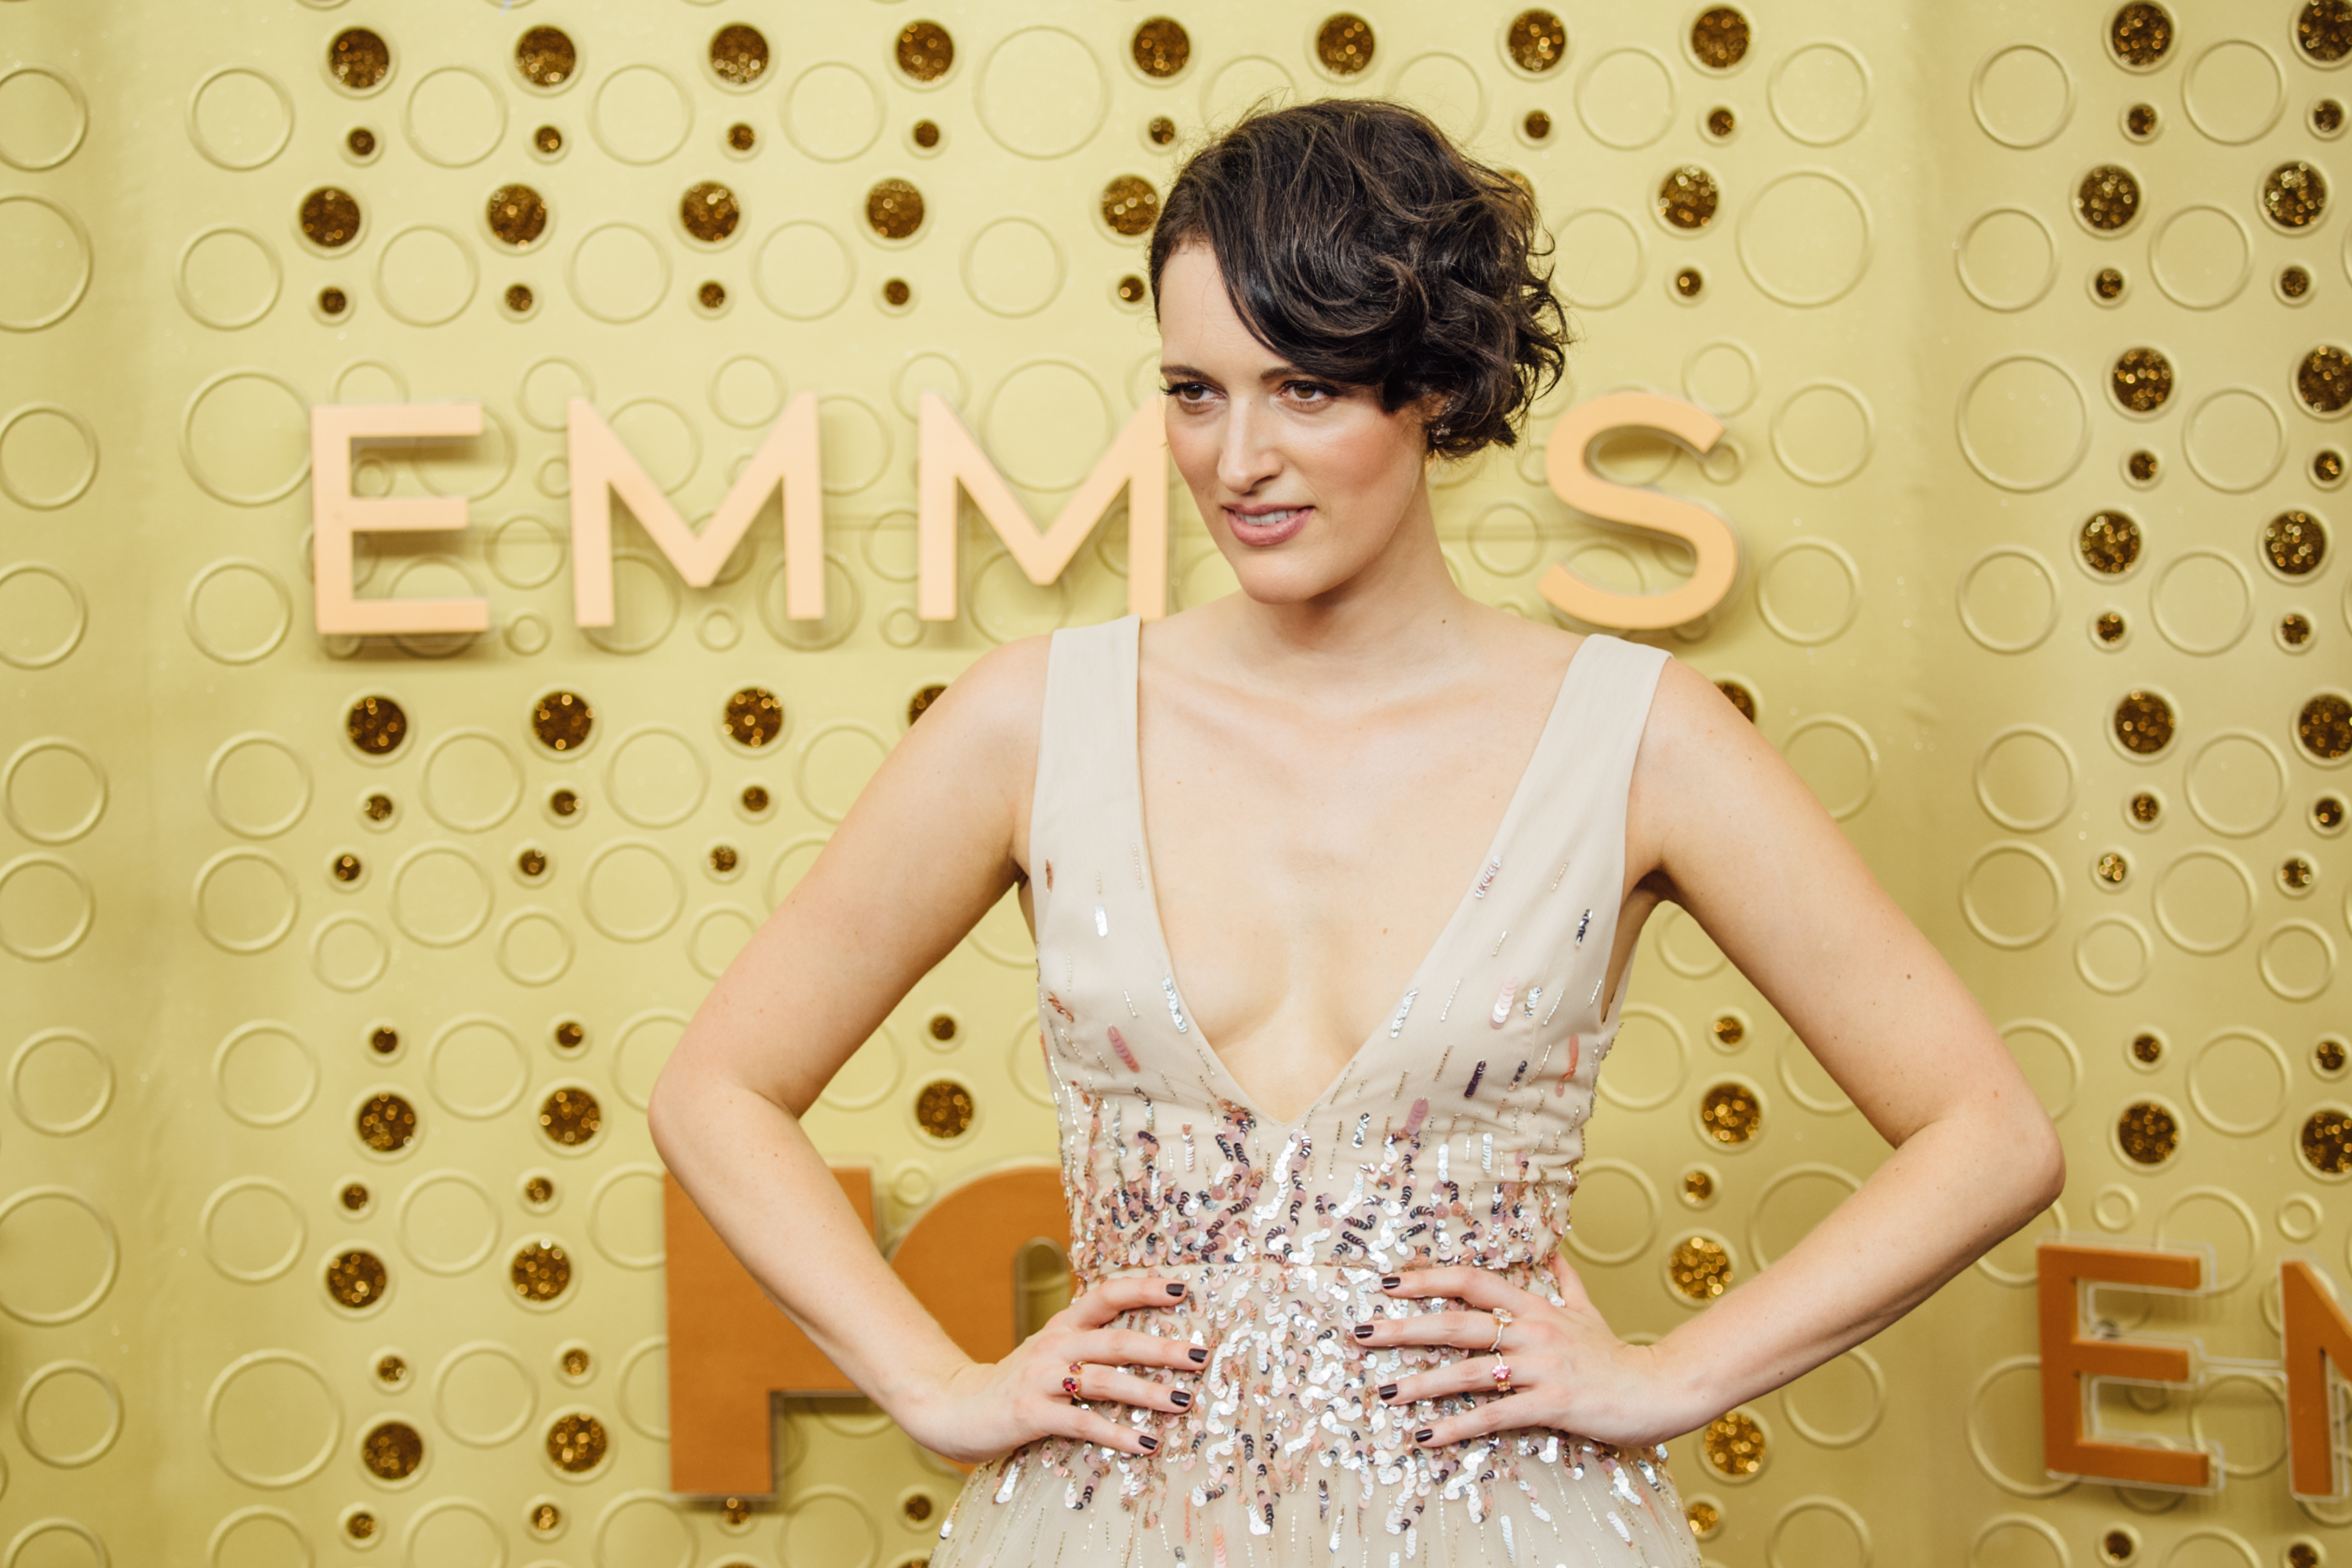 Phoebe Waller-Bridge facts